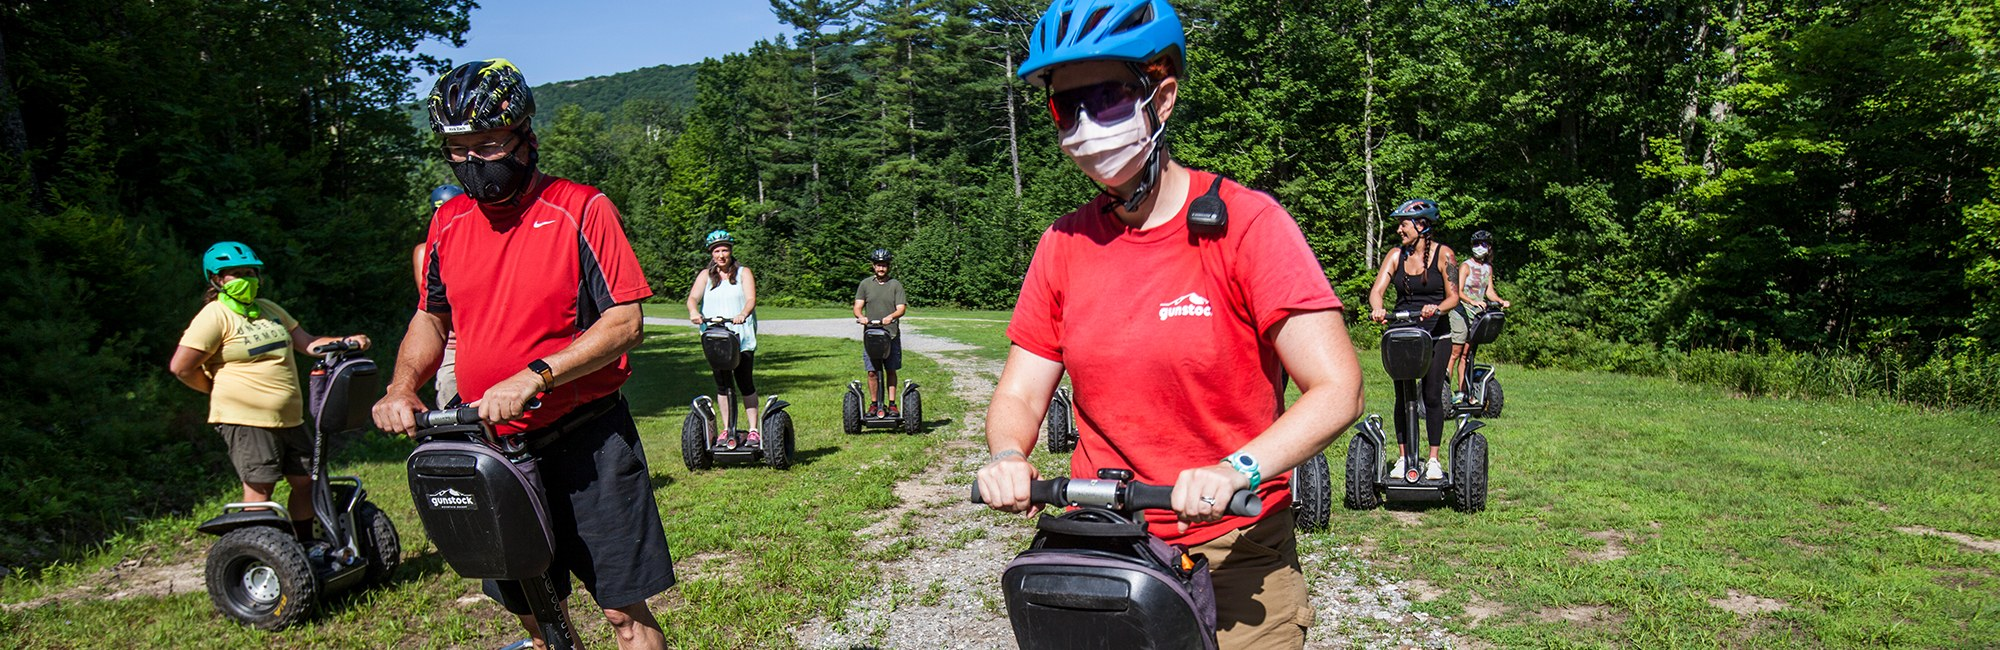 People driving Segways while wearing masks